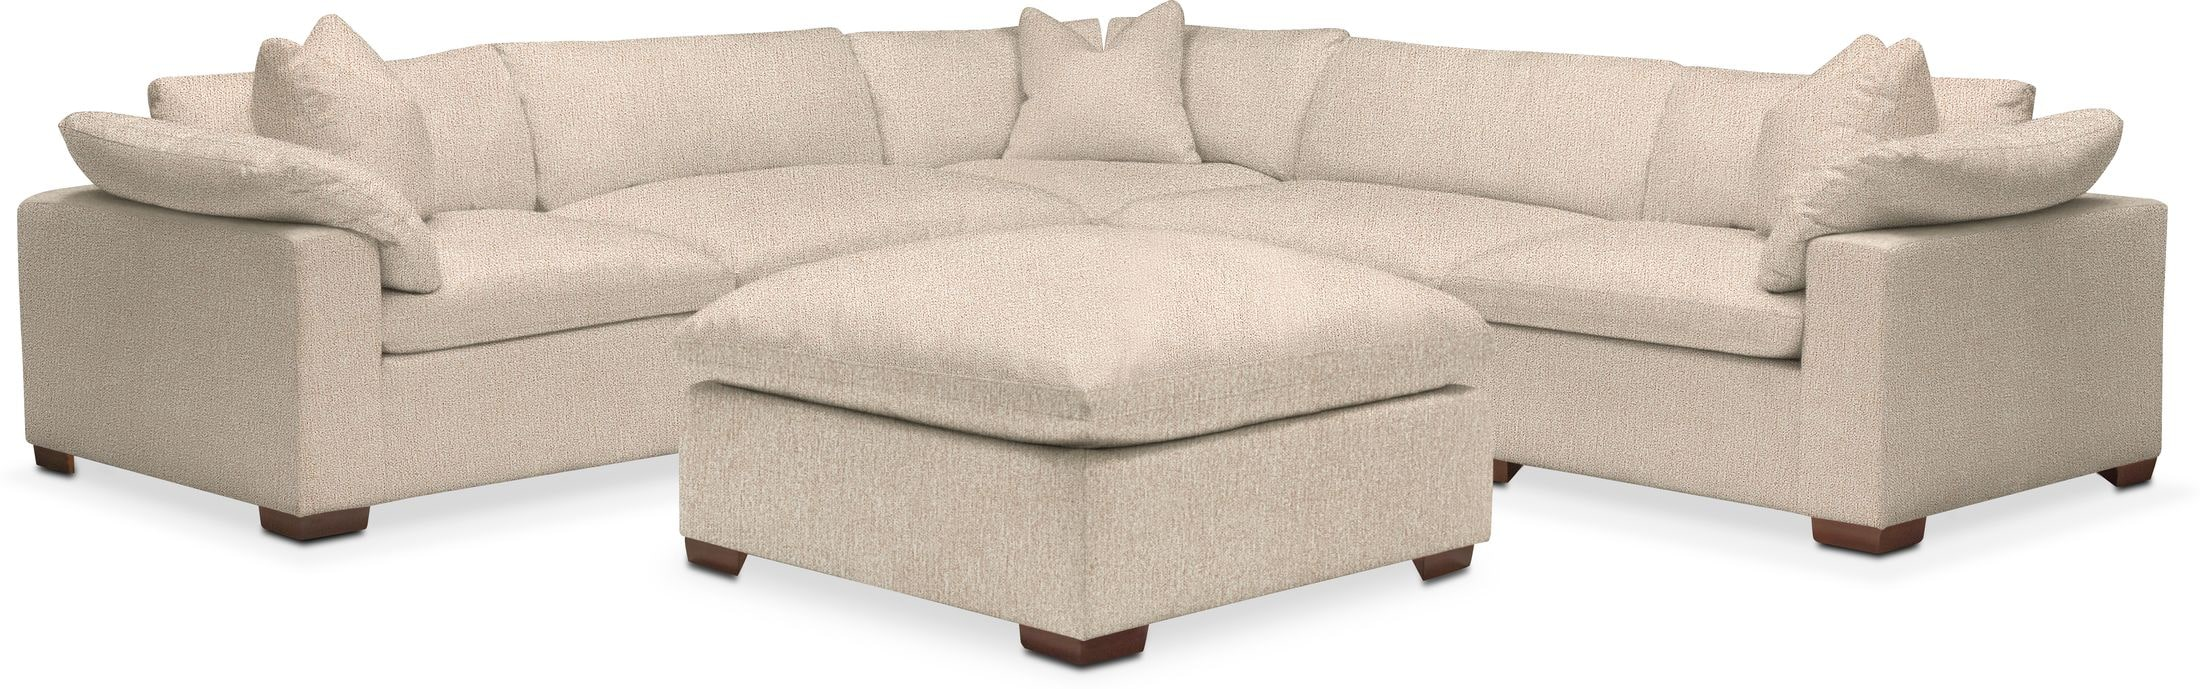 Living Room Furniture - 6PC SCTNL-PLUSH PF - Halifax Shell